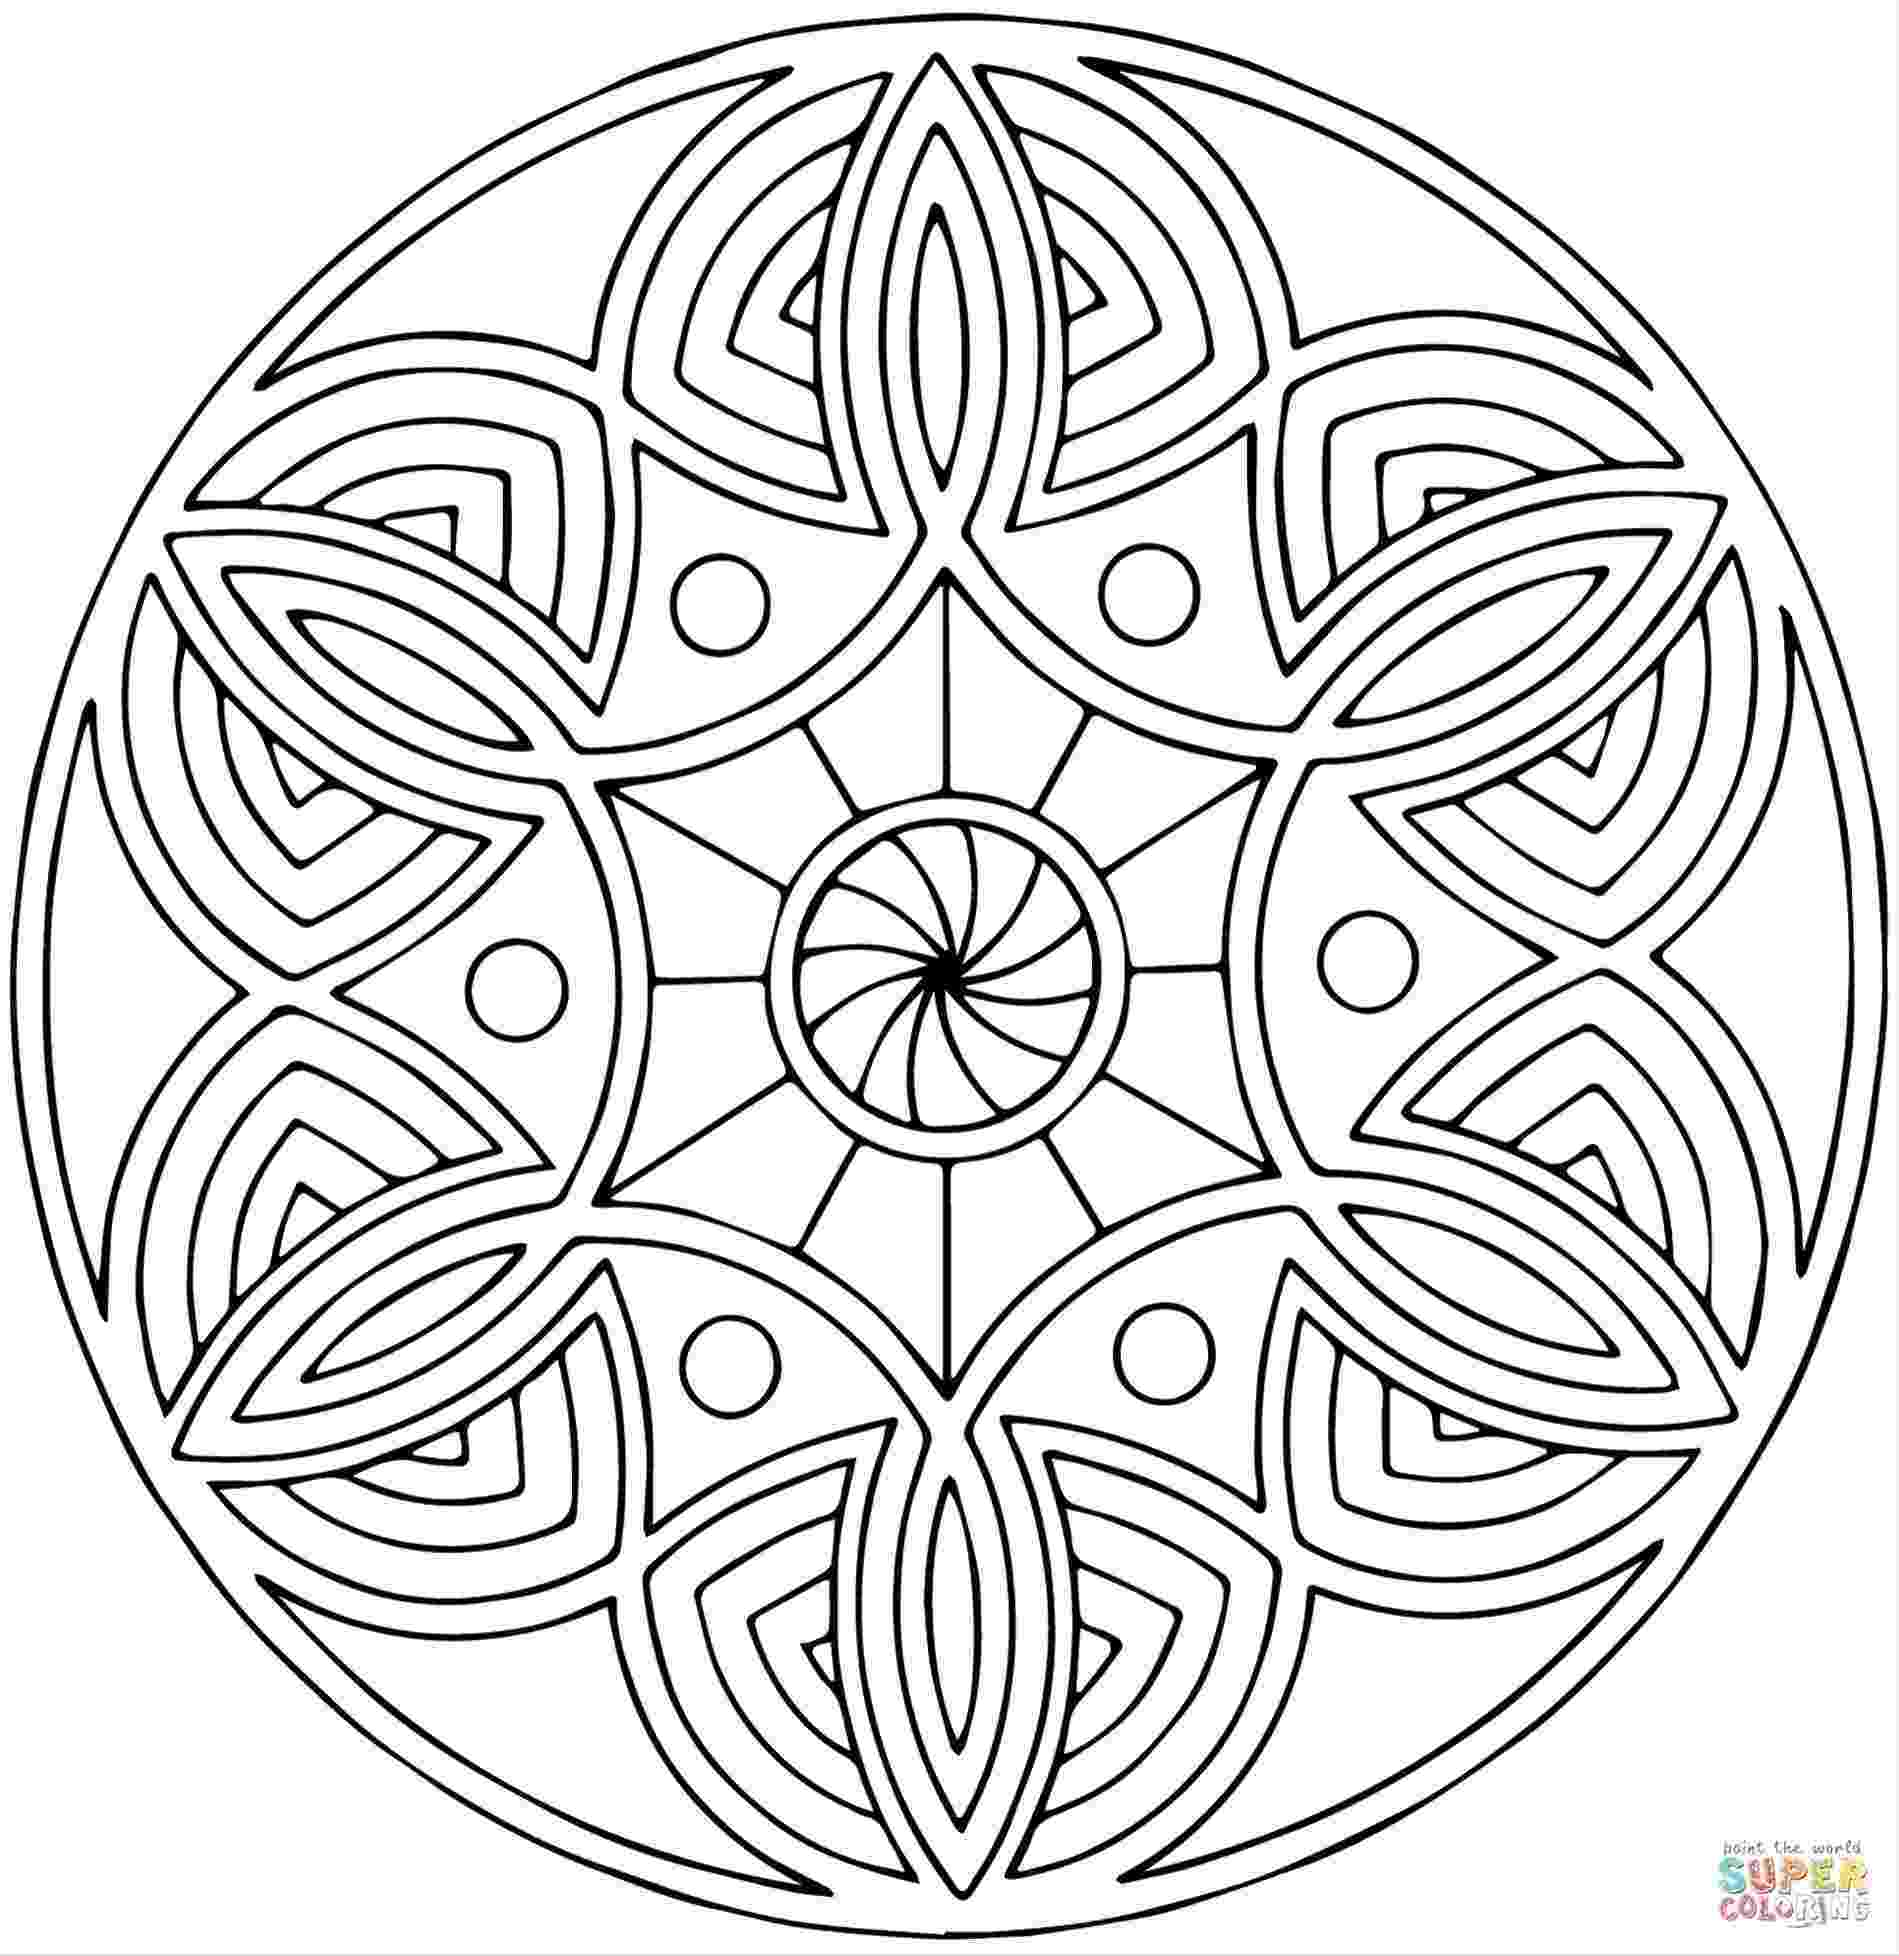 celtic flowers coloring book coloring in hearts and flowers mandala sticker coloring book celtic flowers coloring